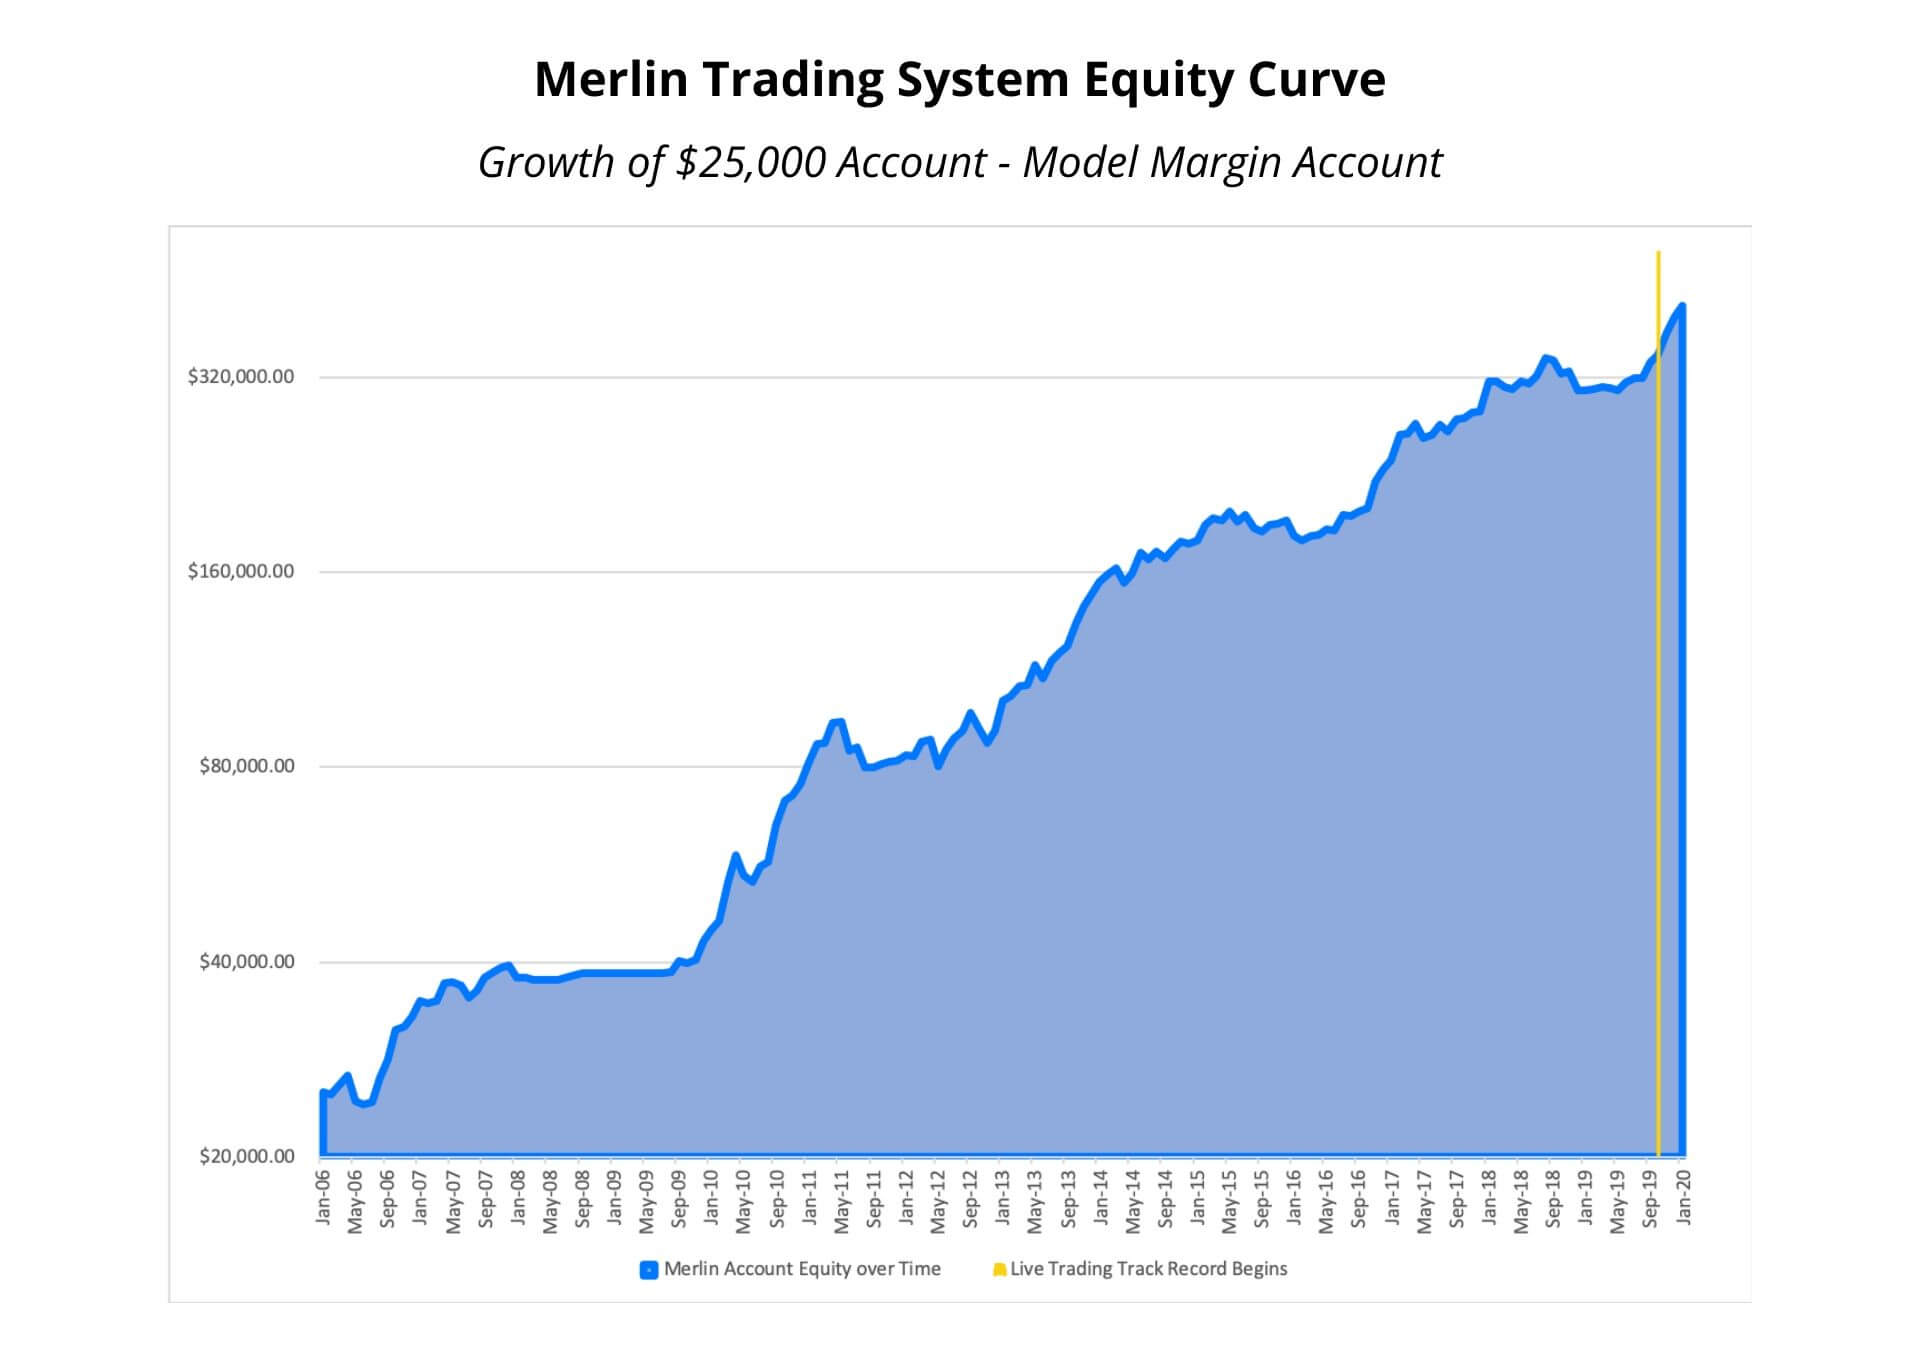 Merlin Trading System Image of Equity Curve Through Jan 2020